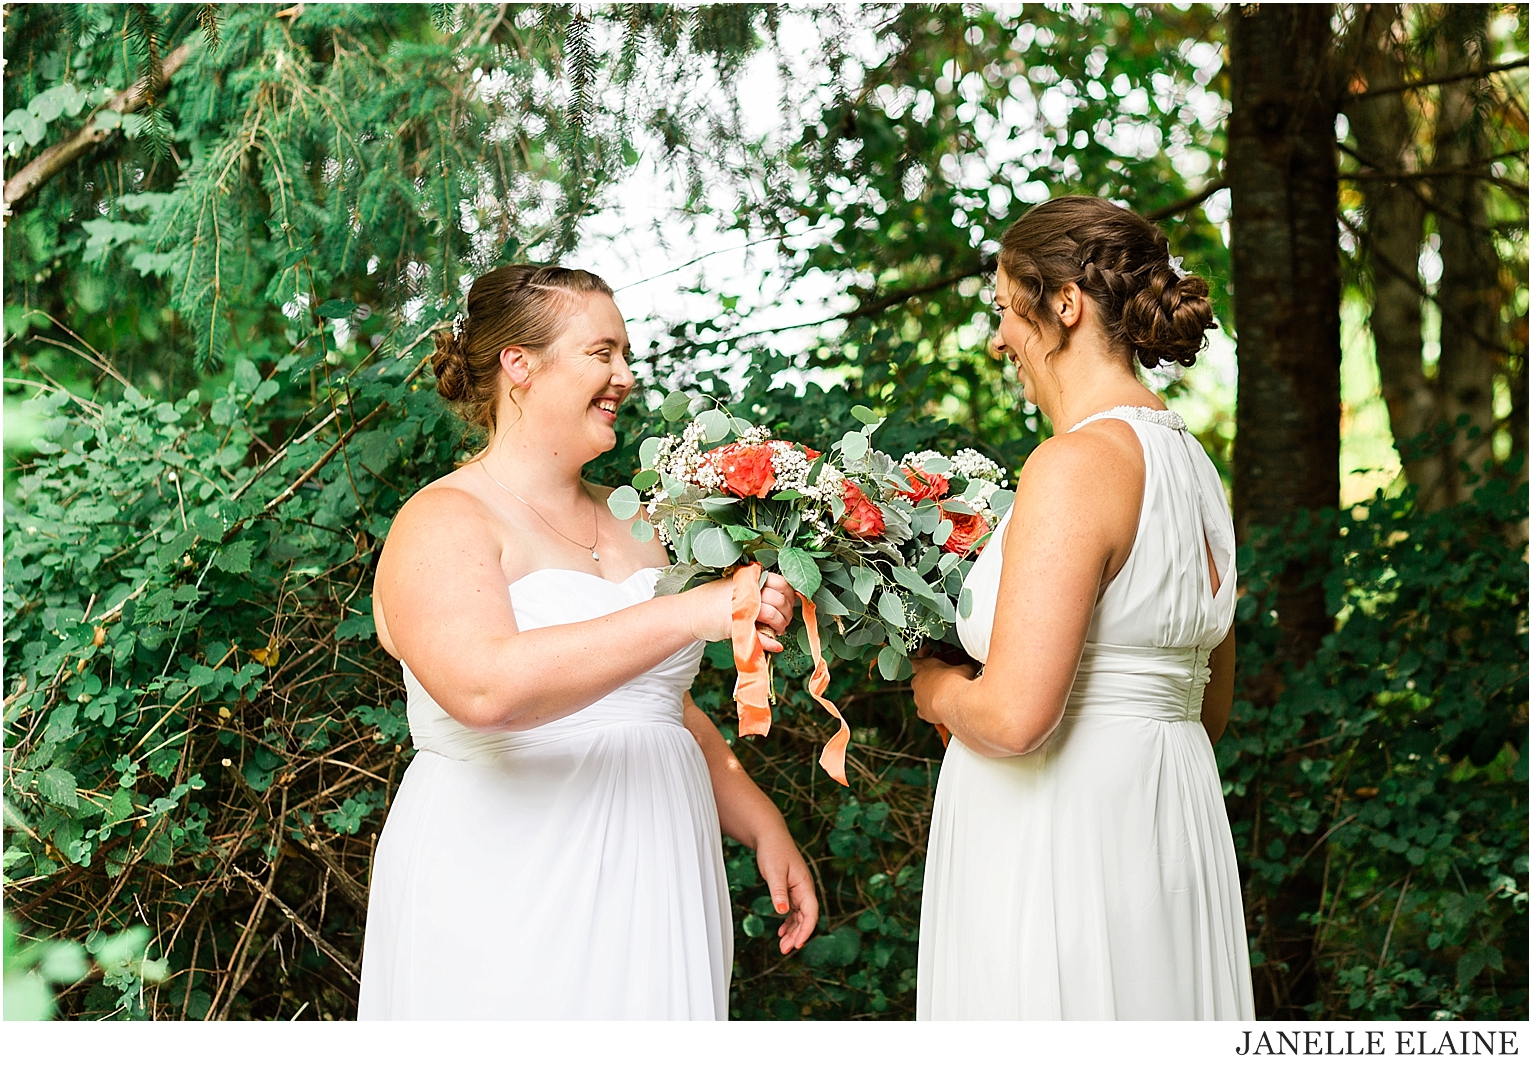 liz and christina lanning-first look and portraits-luther burbank park-janelle elaine photography-37.jpg